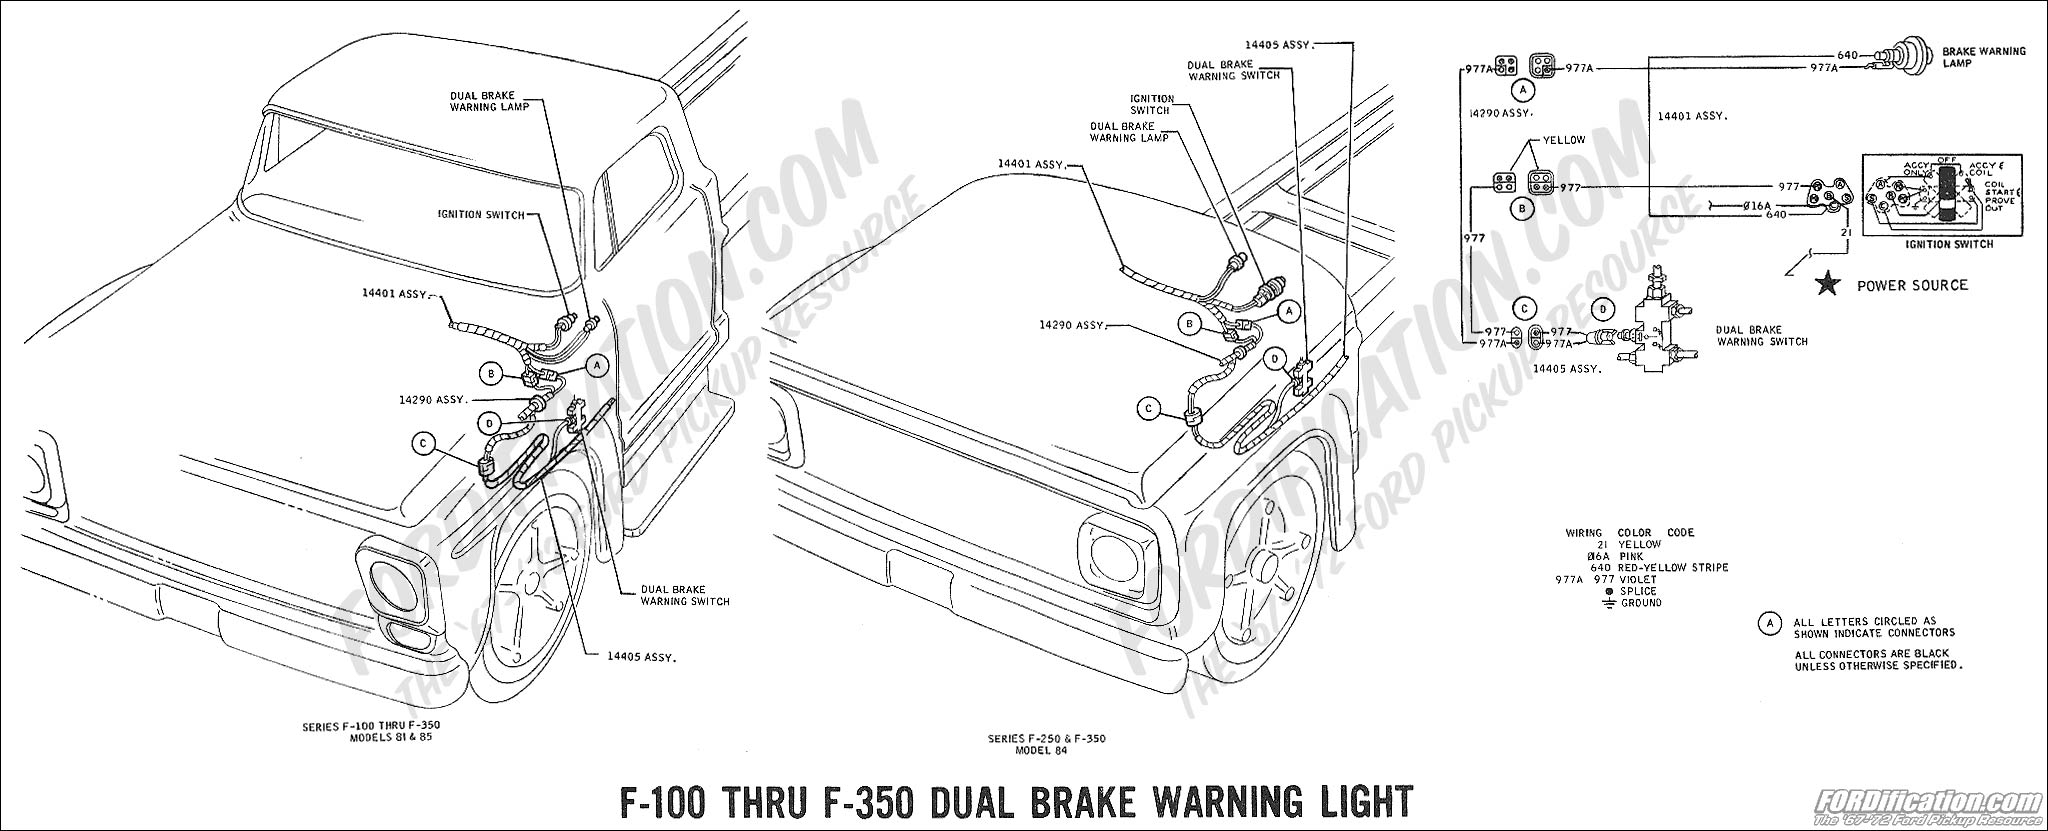 wiring_69brakewarninglight ford truck technical drawings and schematics section h wiring 1997 ford f350 wiring diagram at webbmarketing.co